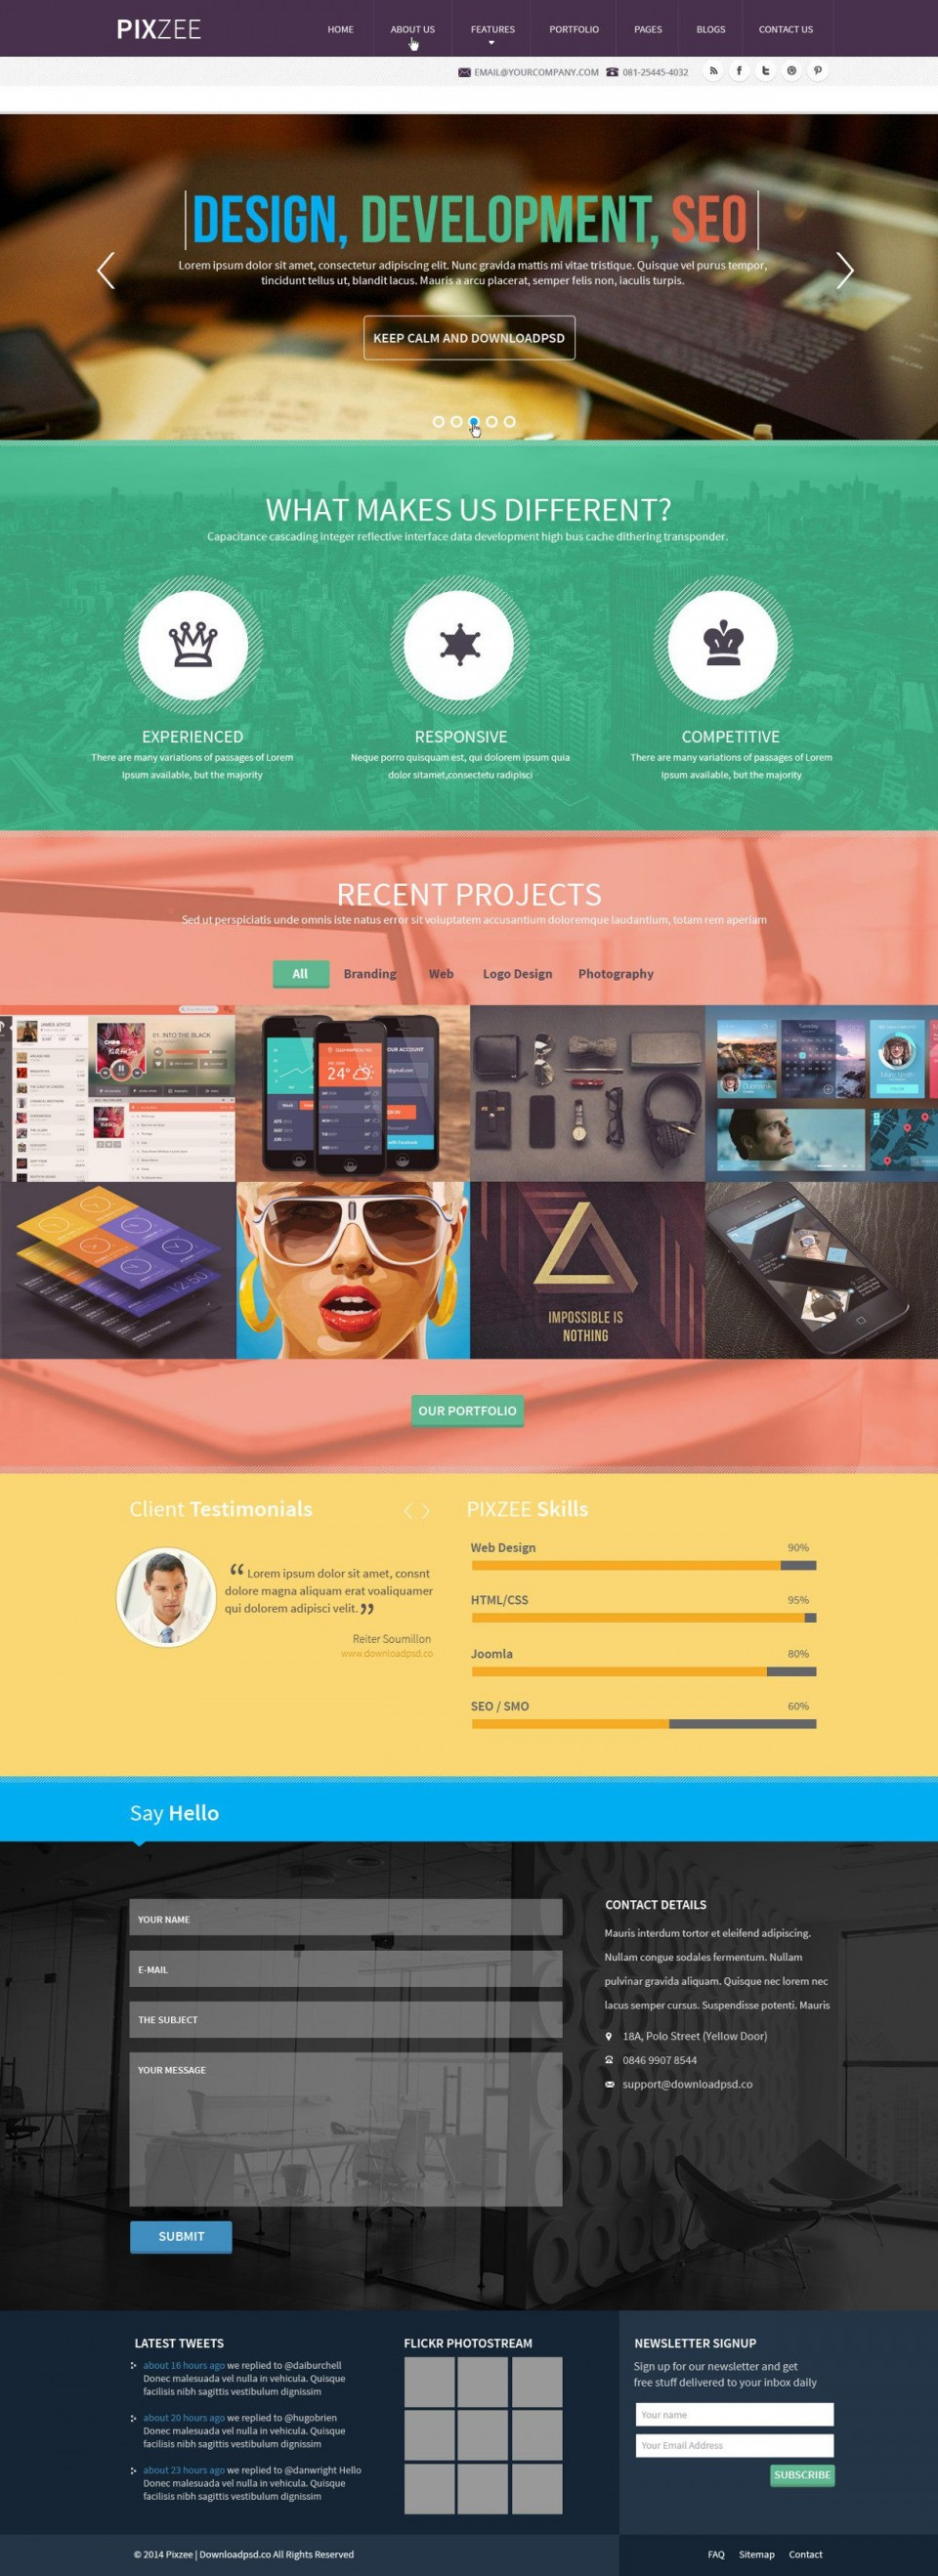 009 Magnificent One Page Website Template Psd Free Download Highest Clarity 960